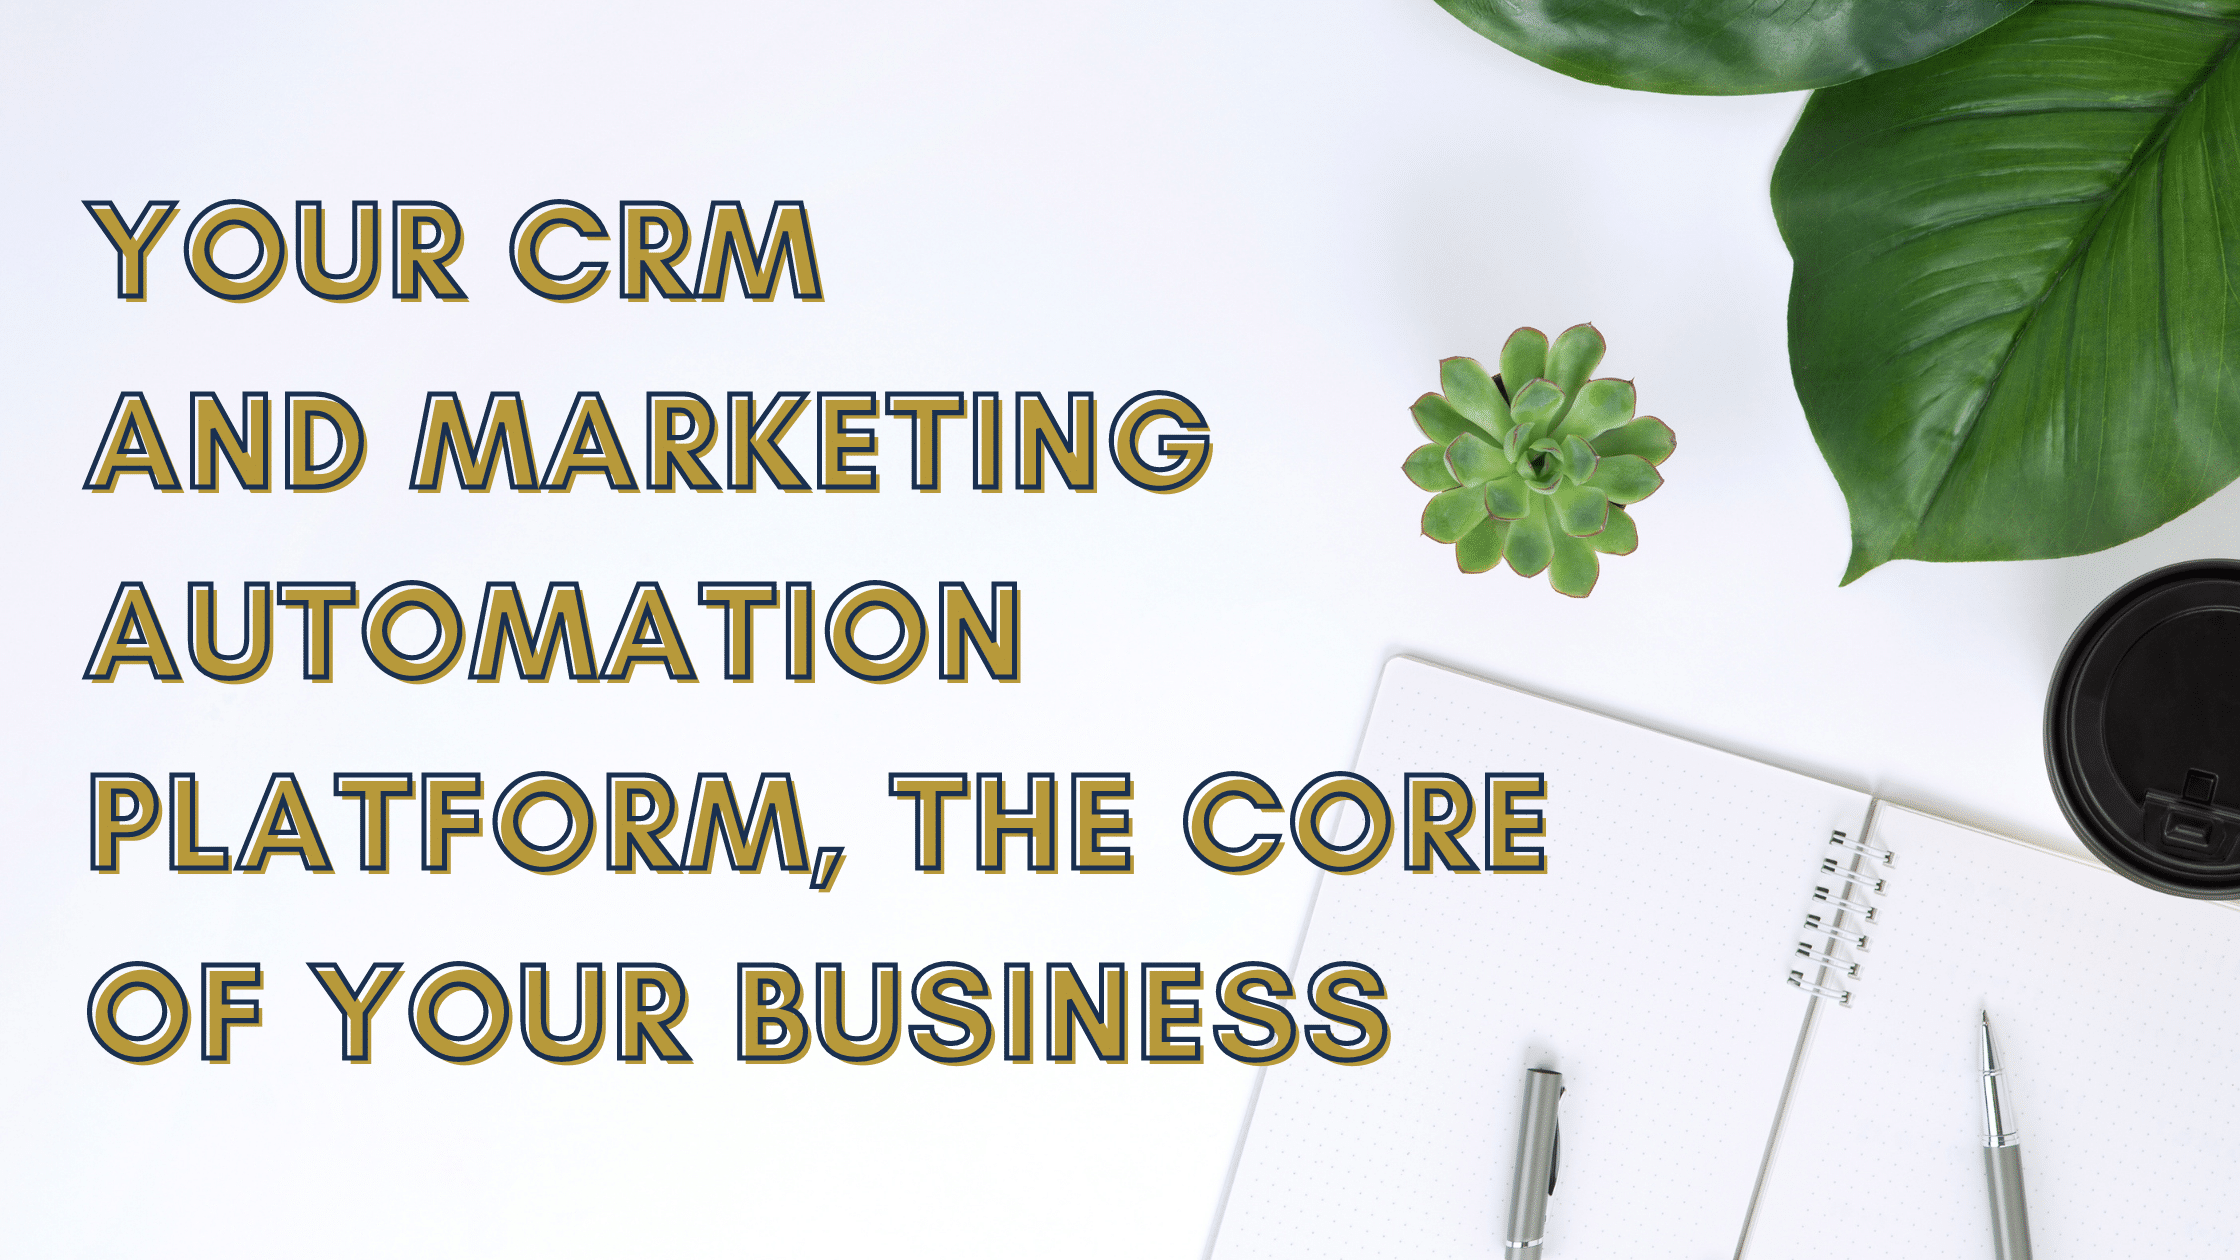 Your CRM and Marketing Automation Platform, The Core Of Your Business